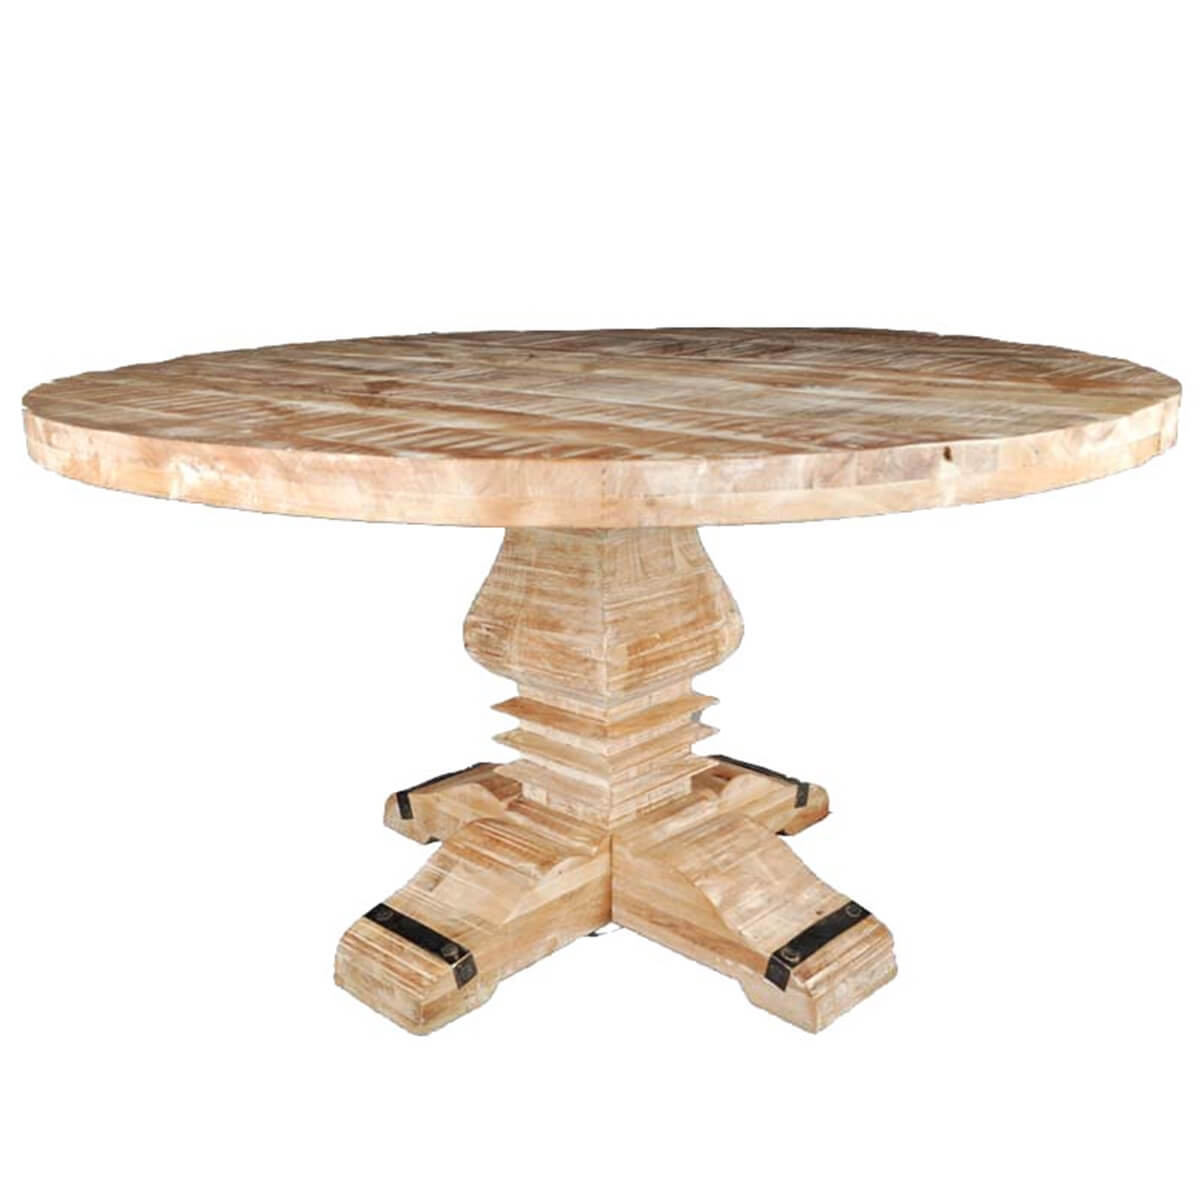 Rustic Mango Wood Pedestal Round Dining Table : 35704 from www.sierralivingconcepts.com size 1200 x 1200 jpeg 246kB